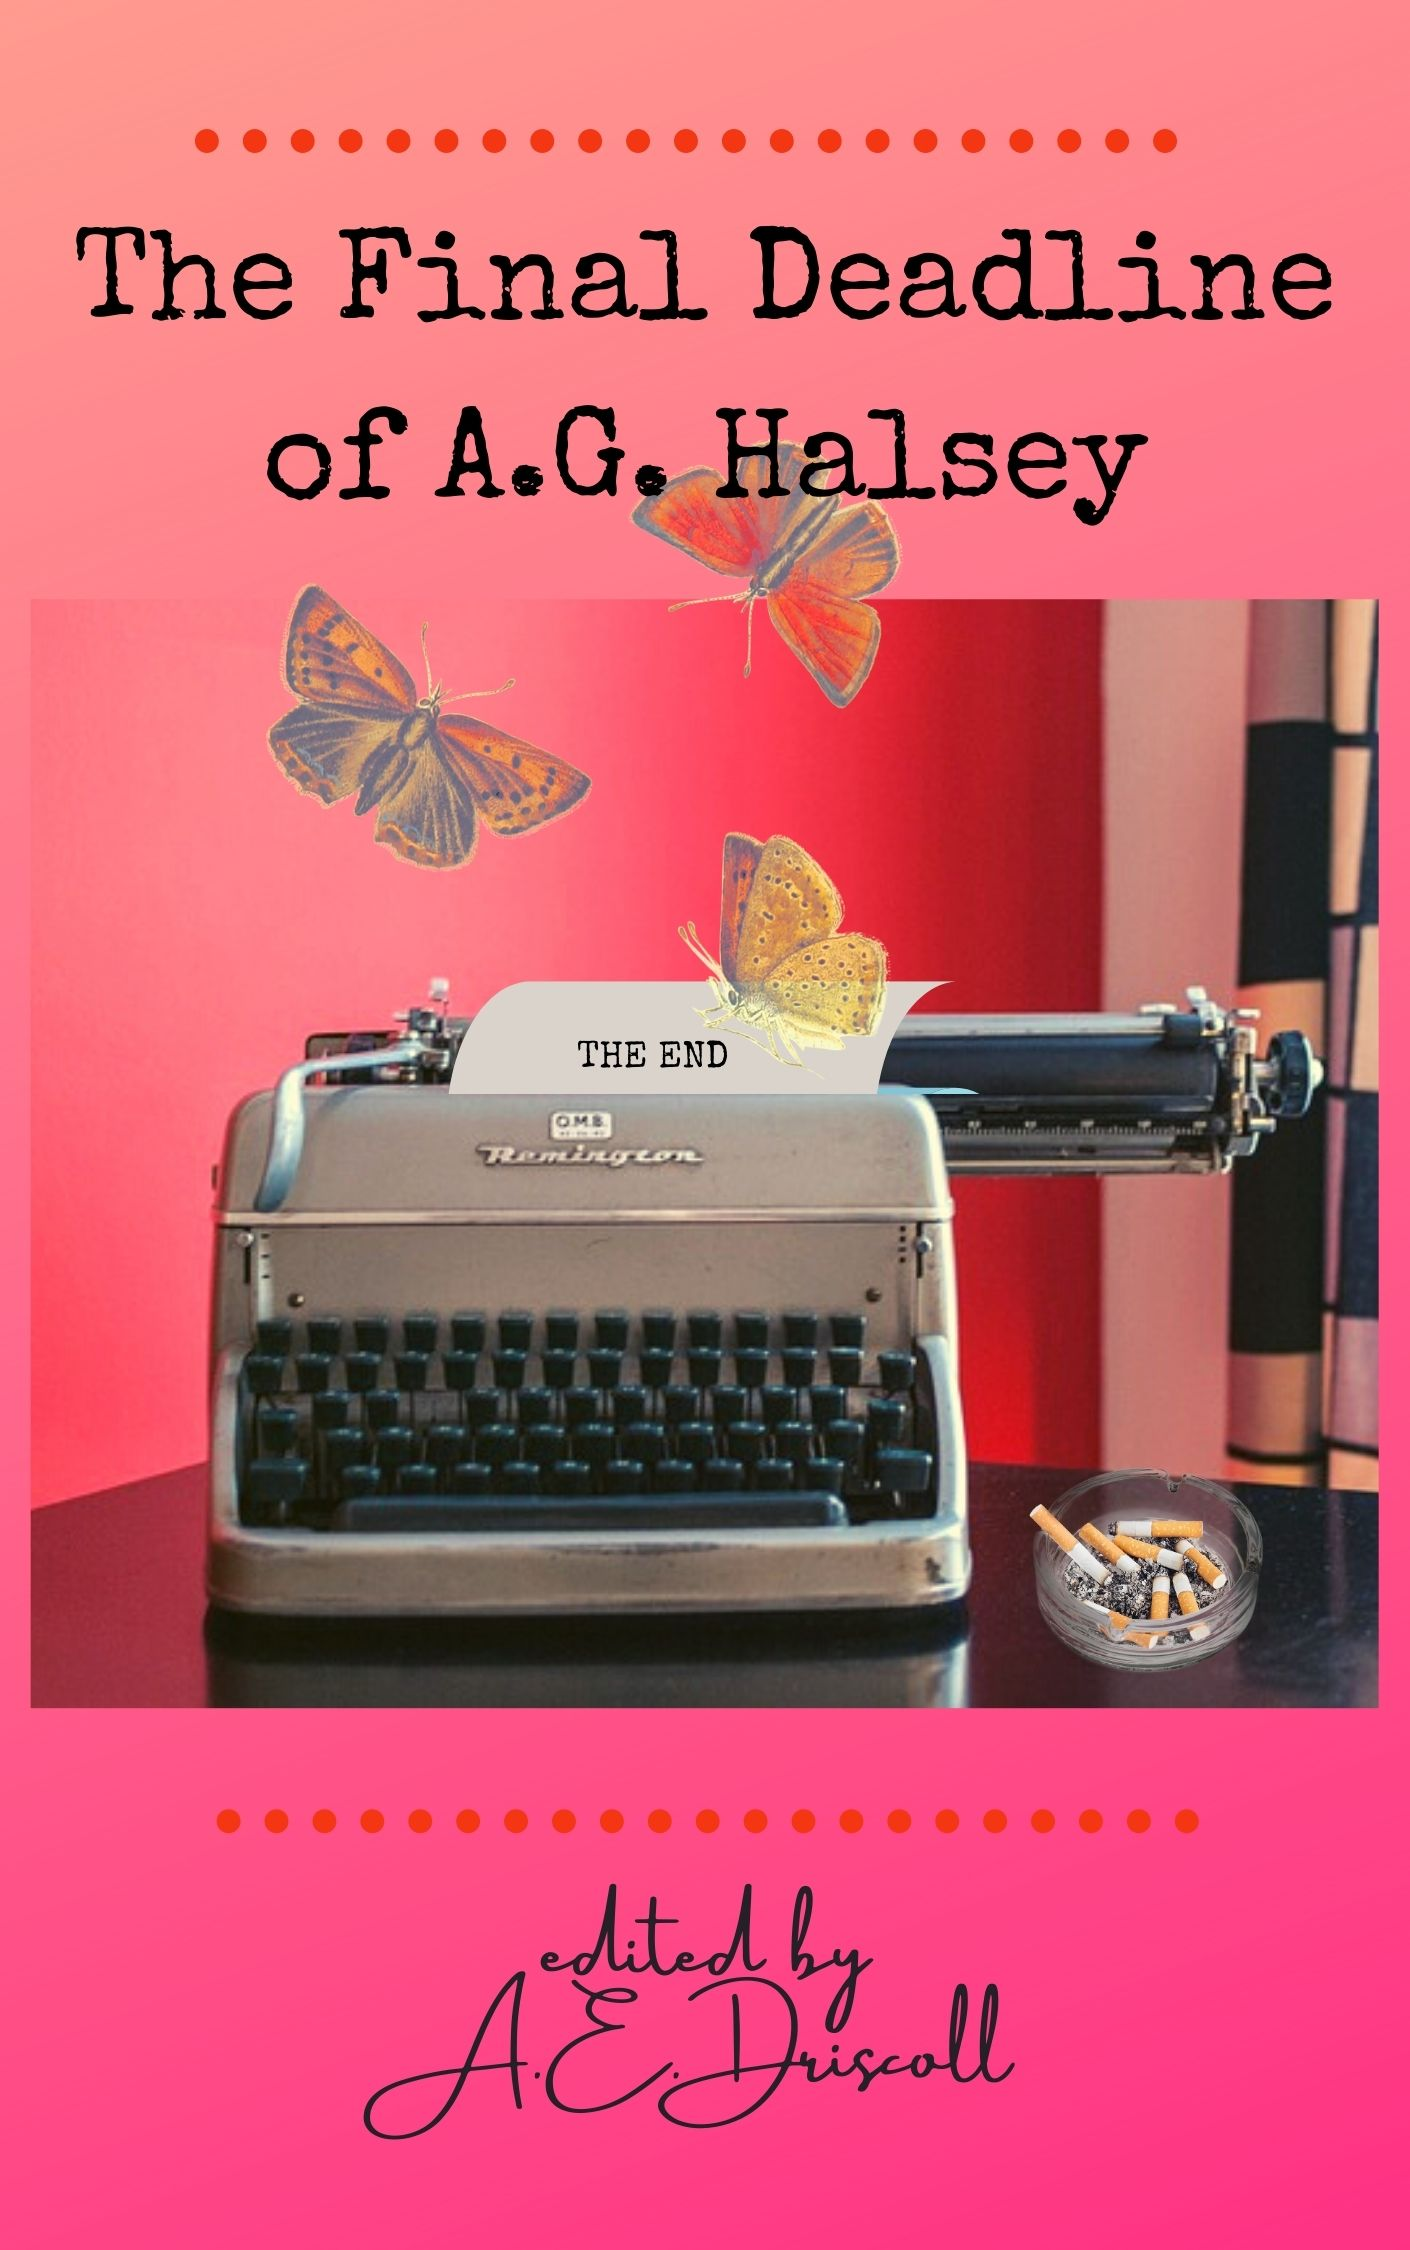 Image for The Final Deadline of A.G. Halsey story